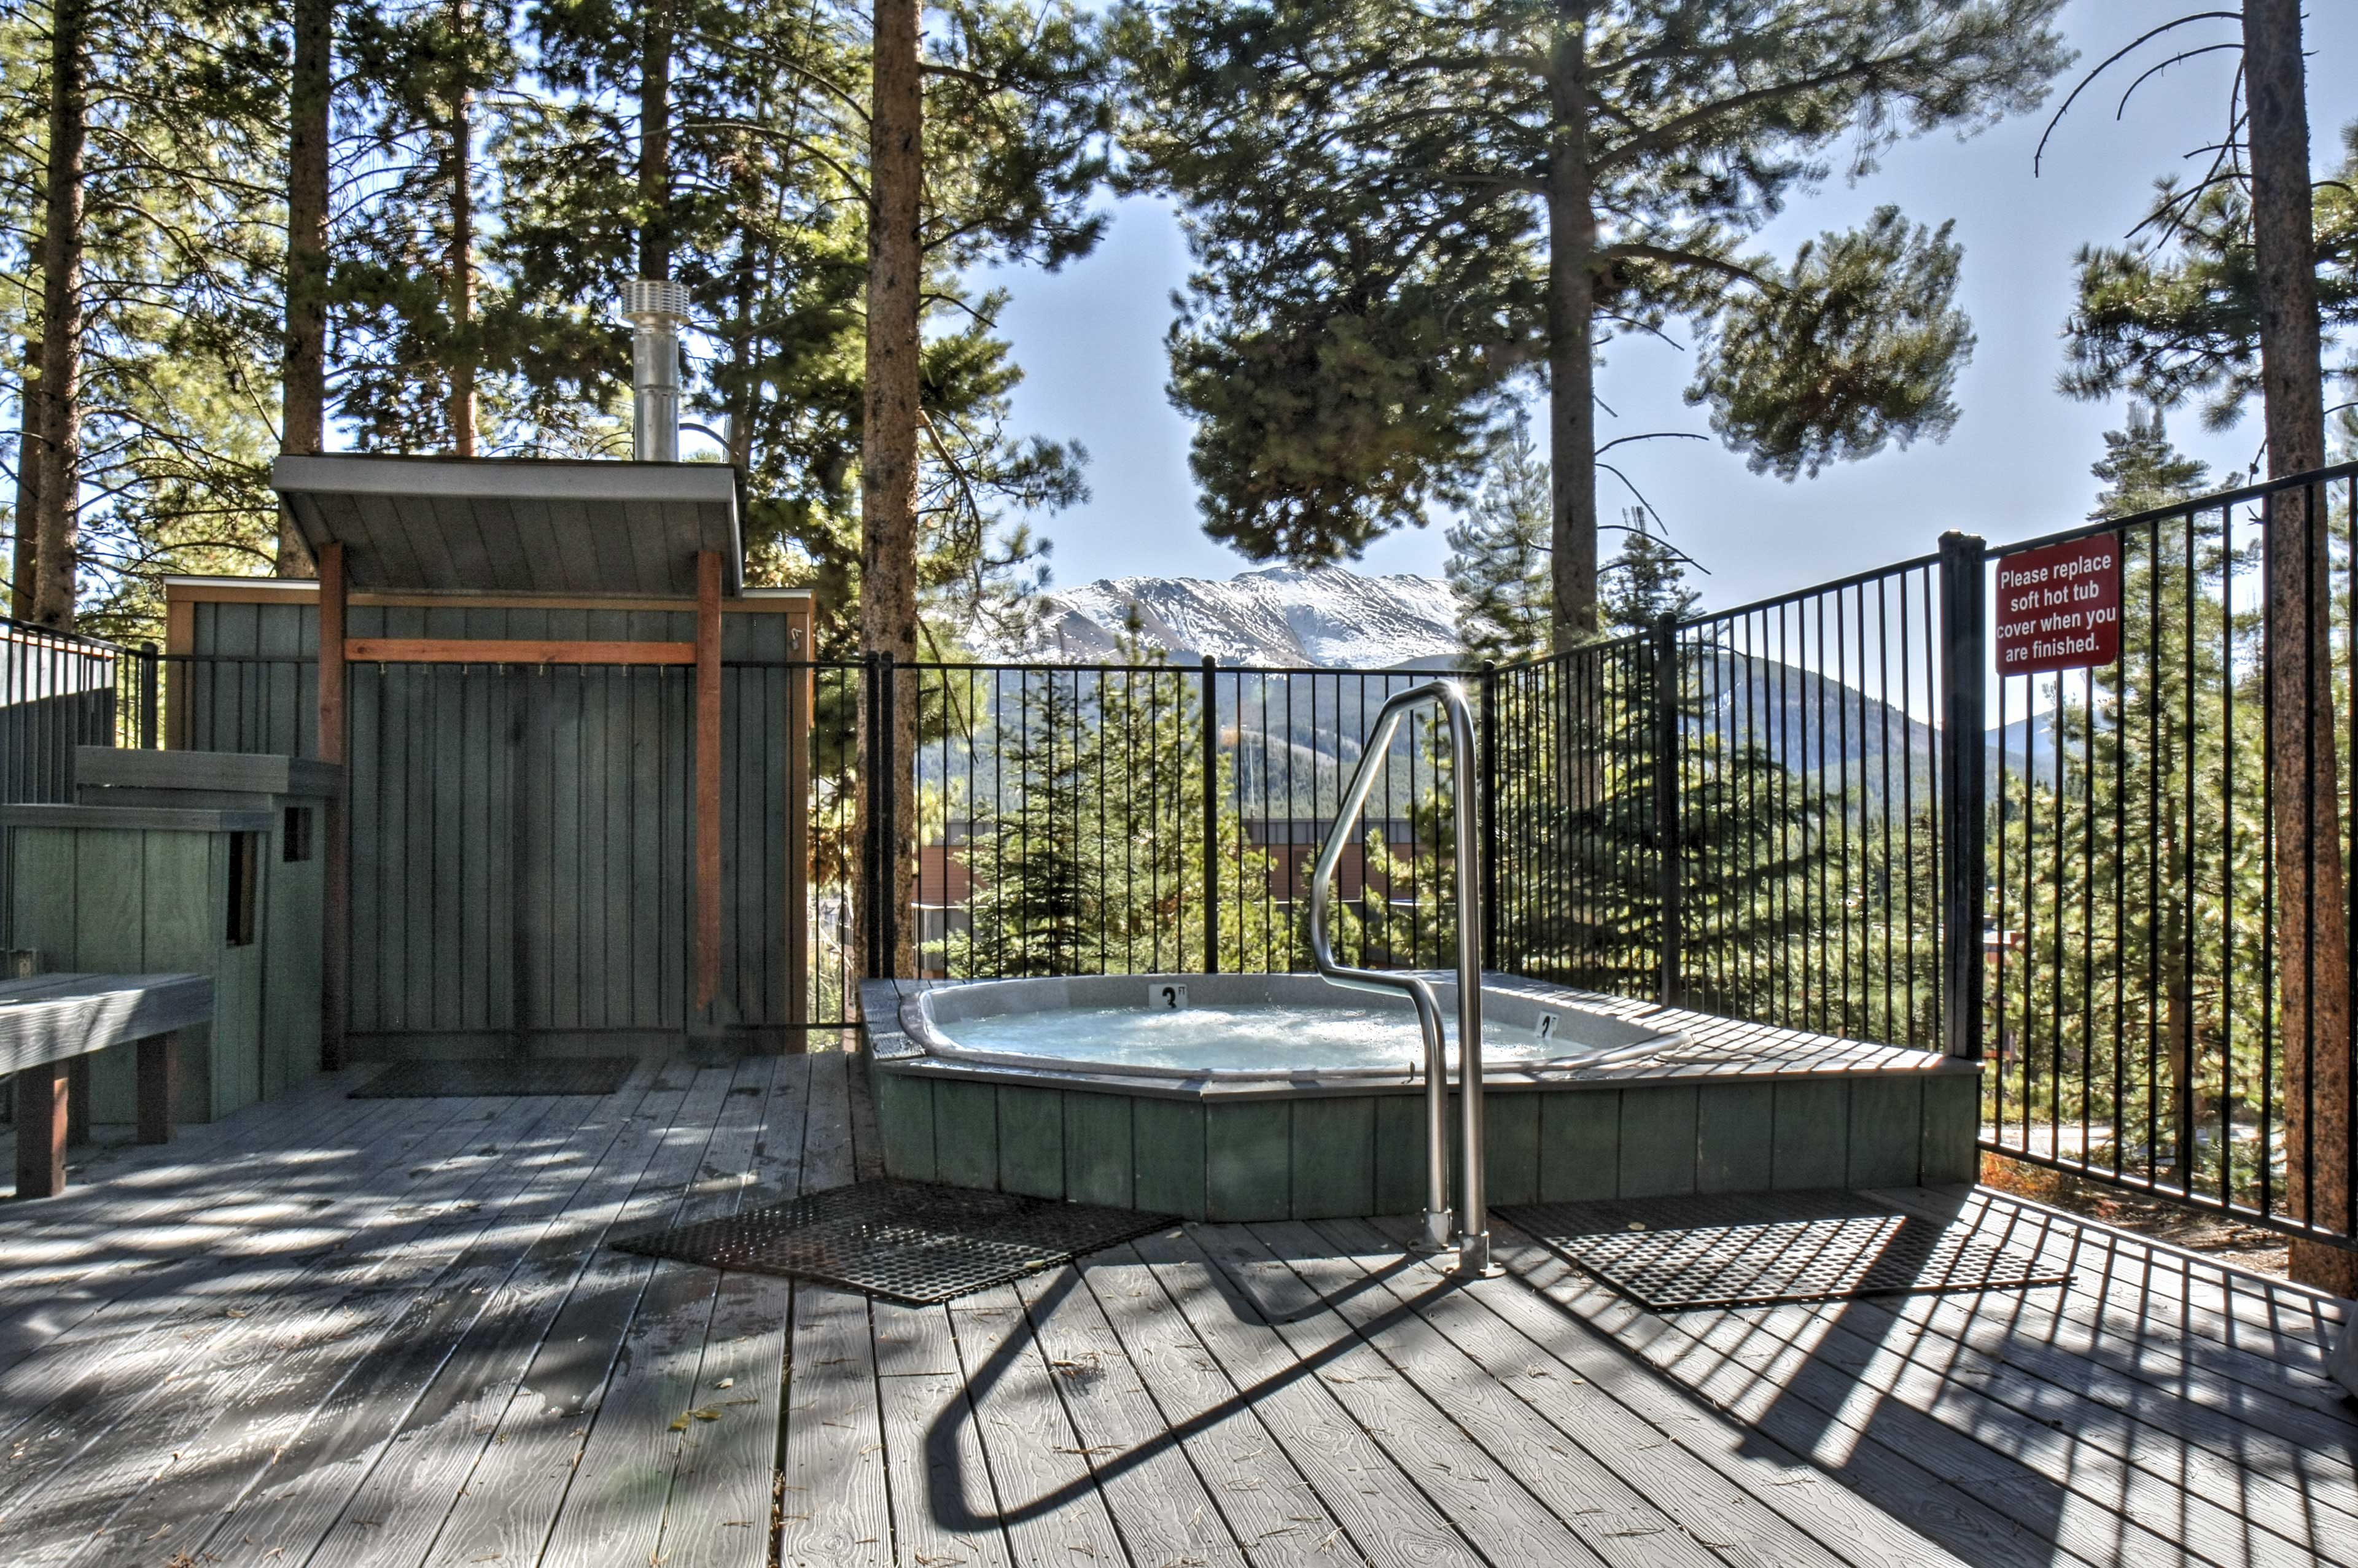 Take in the majestic mountain views from the soothing community Jacuzzi.